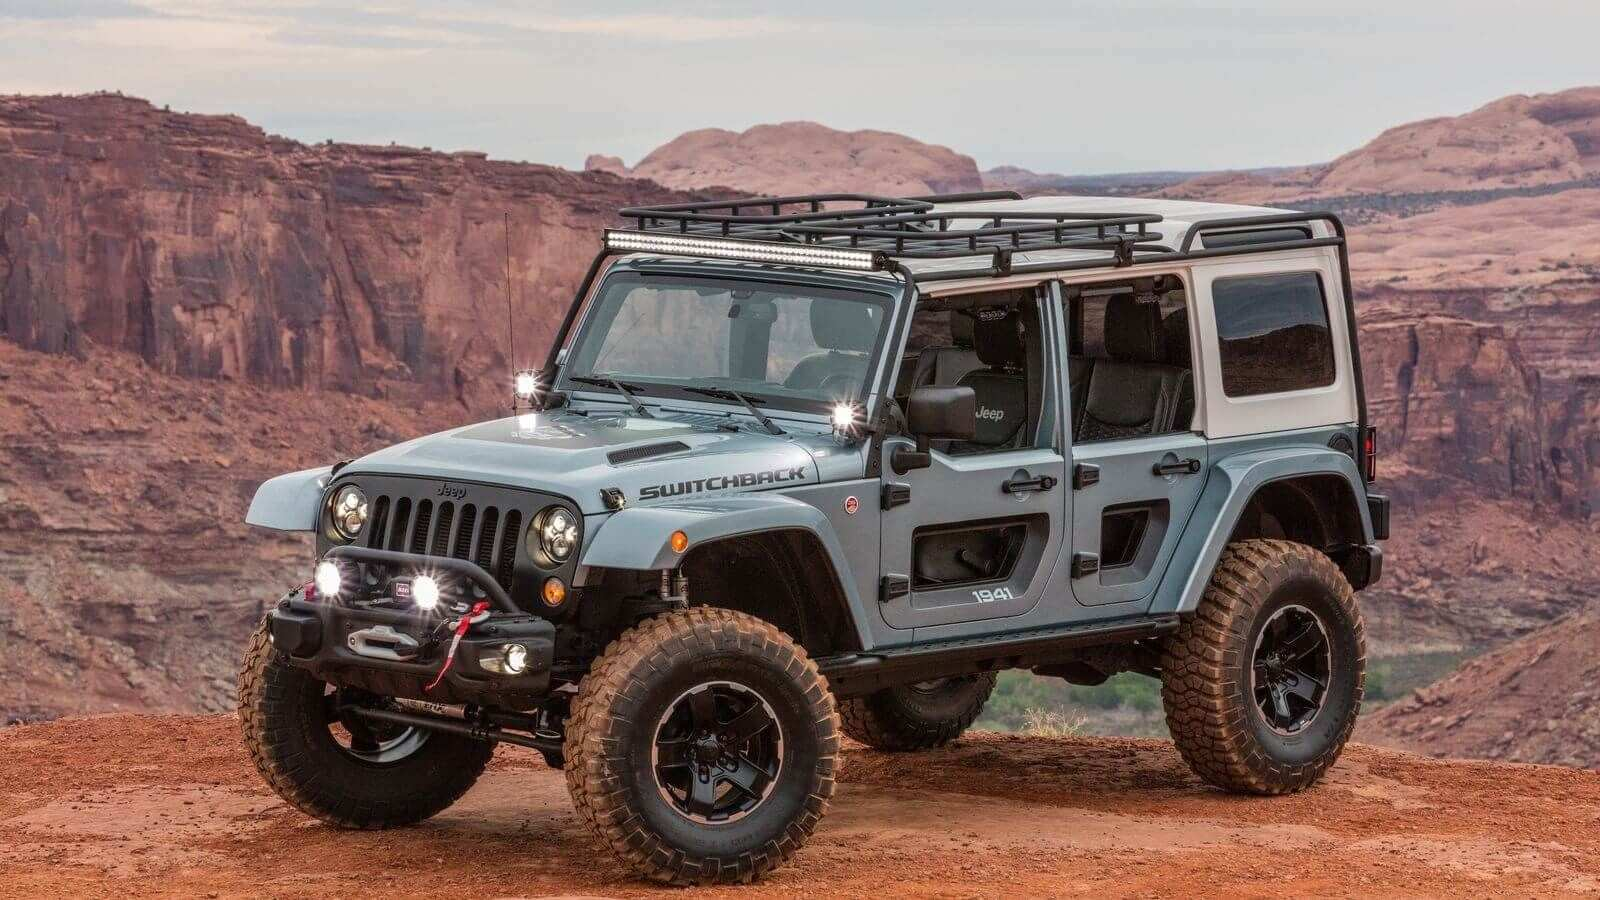 79 Great 2020 Jeep Wrangler Unlimited Overview with 2020 Jeep Wrangler Unlimited